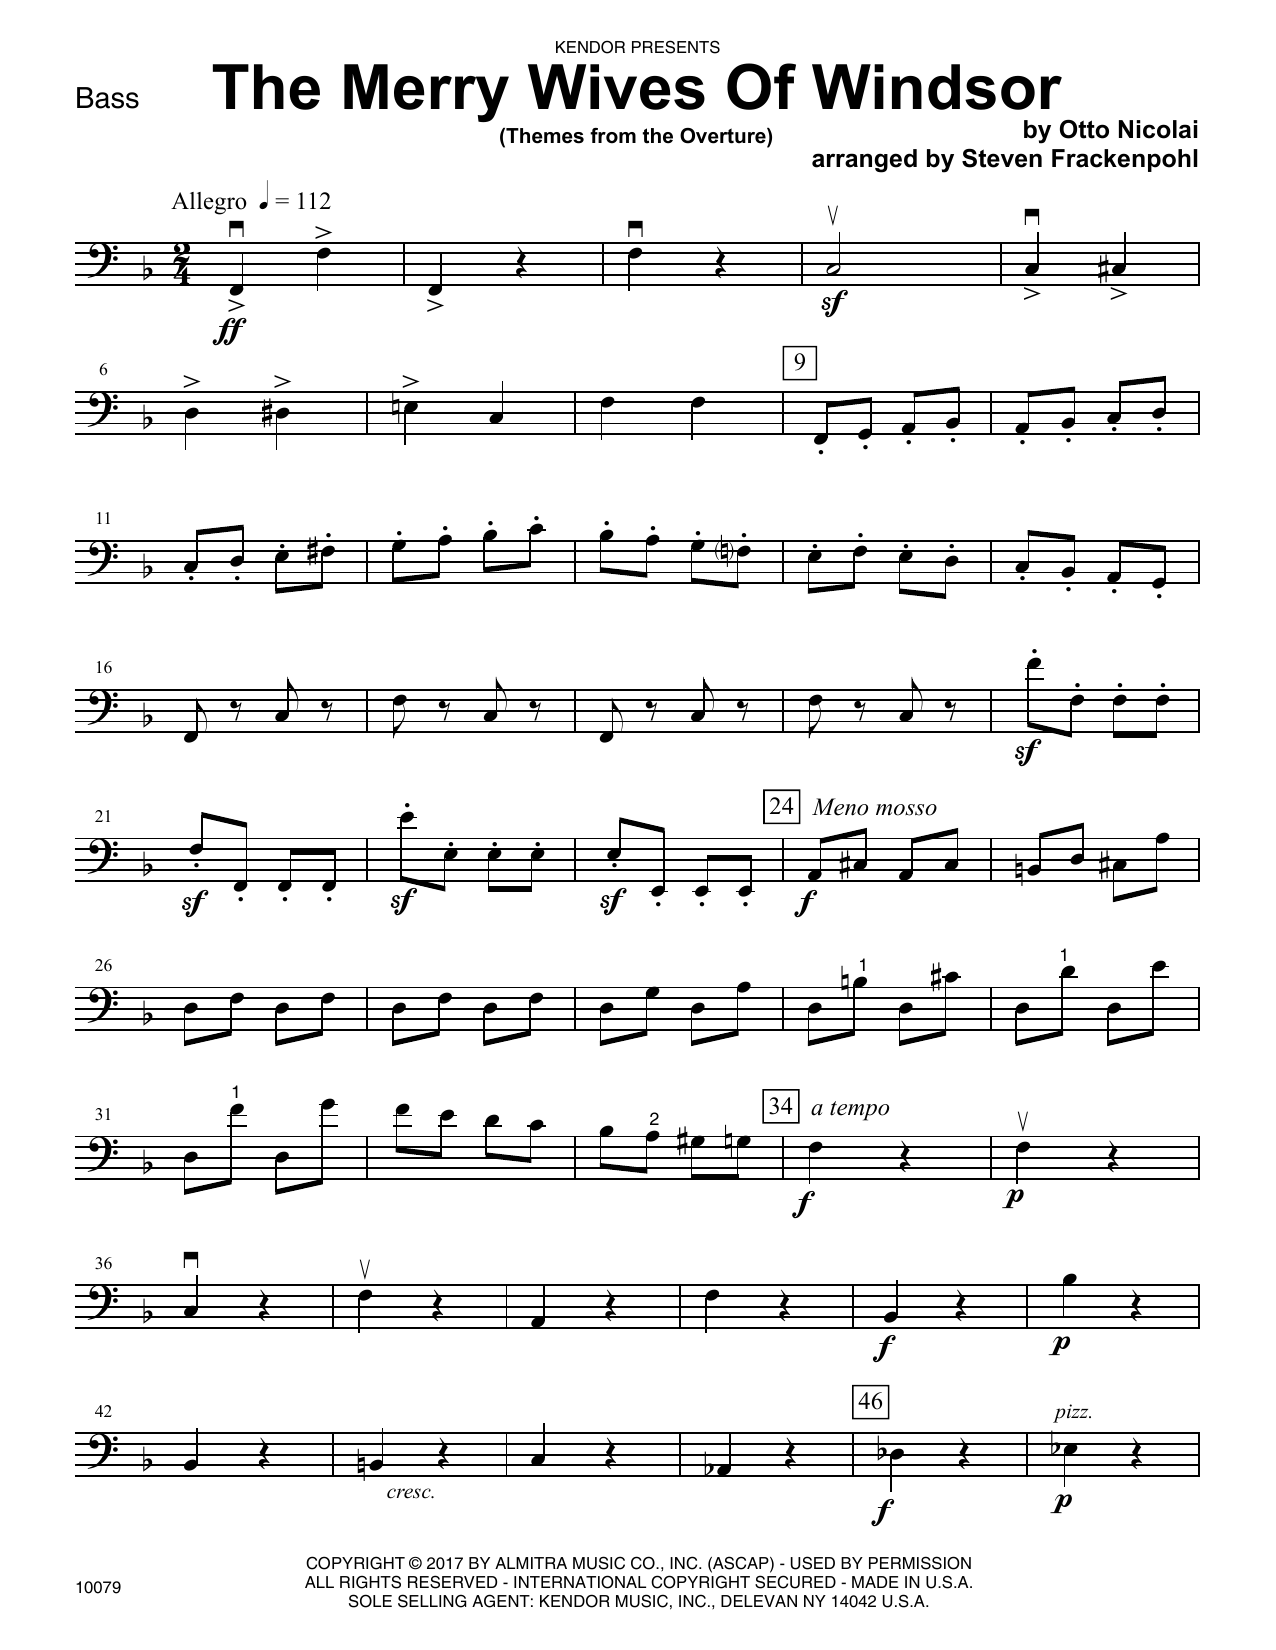 Steven Frackenpohl The Merry Wives Of Windsor (Themes From The Overture) - Bass sheet music notes printable PDF score